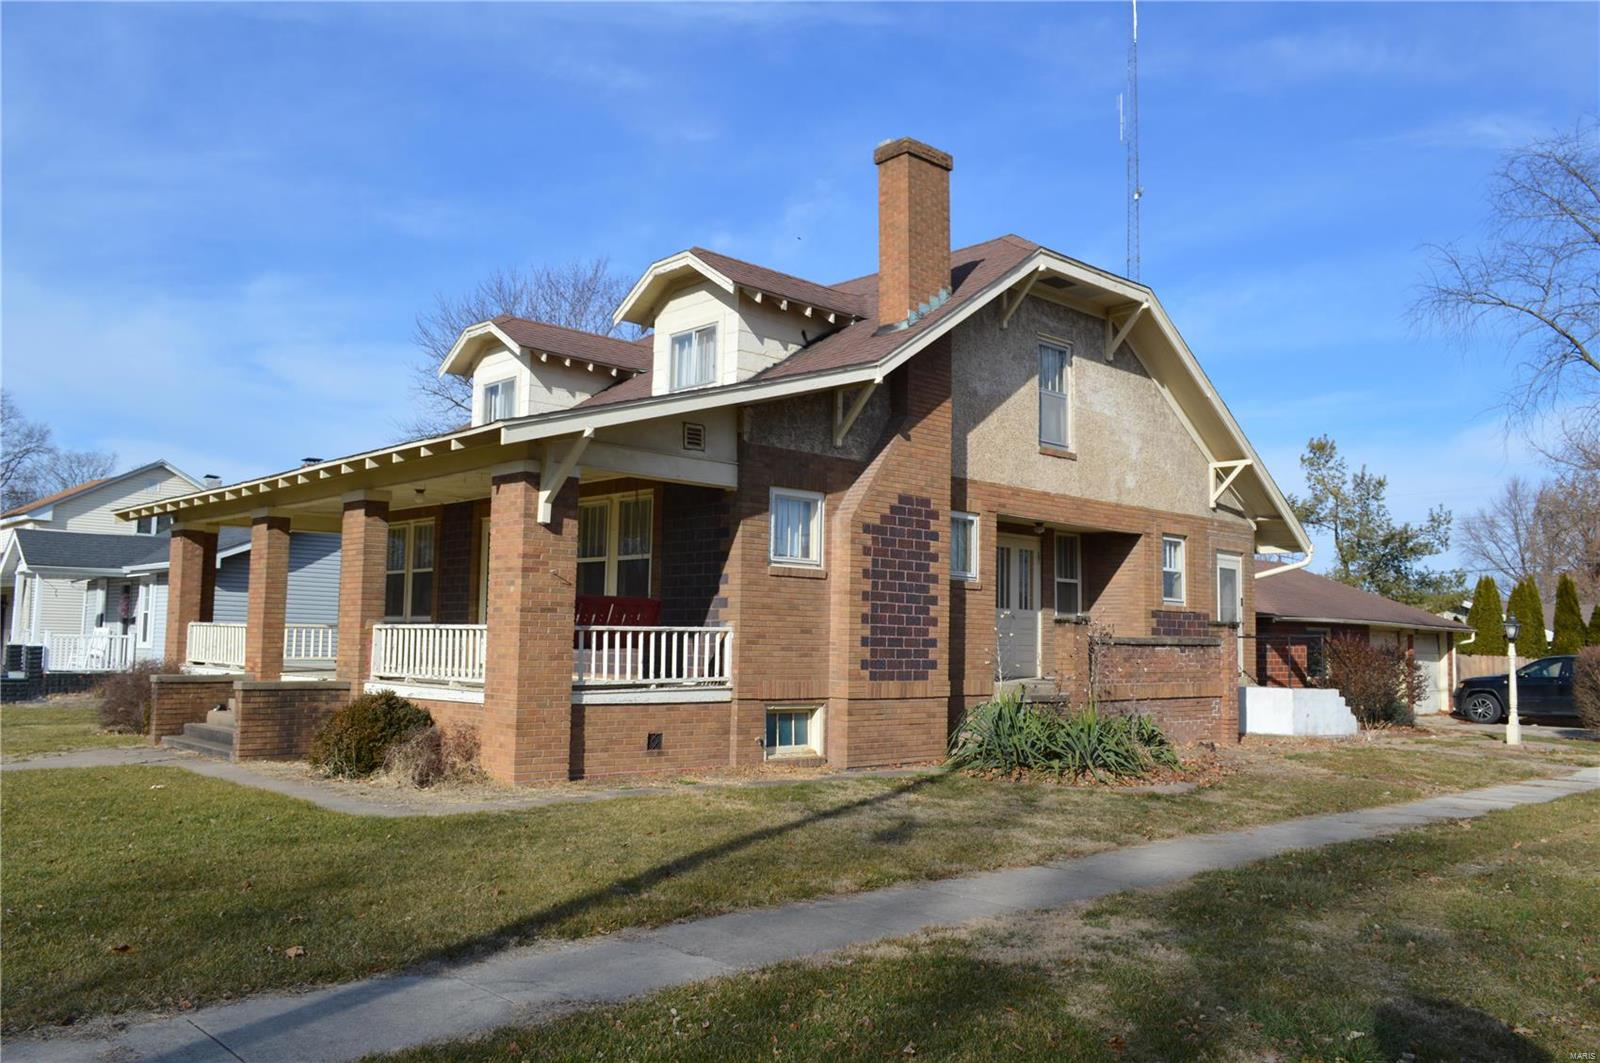 702 Locust Property Photo - Carrollton, IL real estate listing